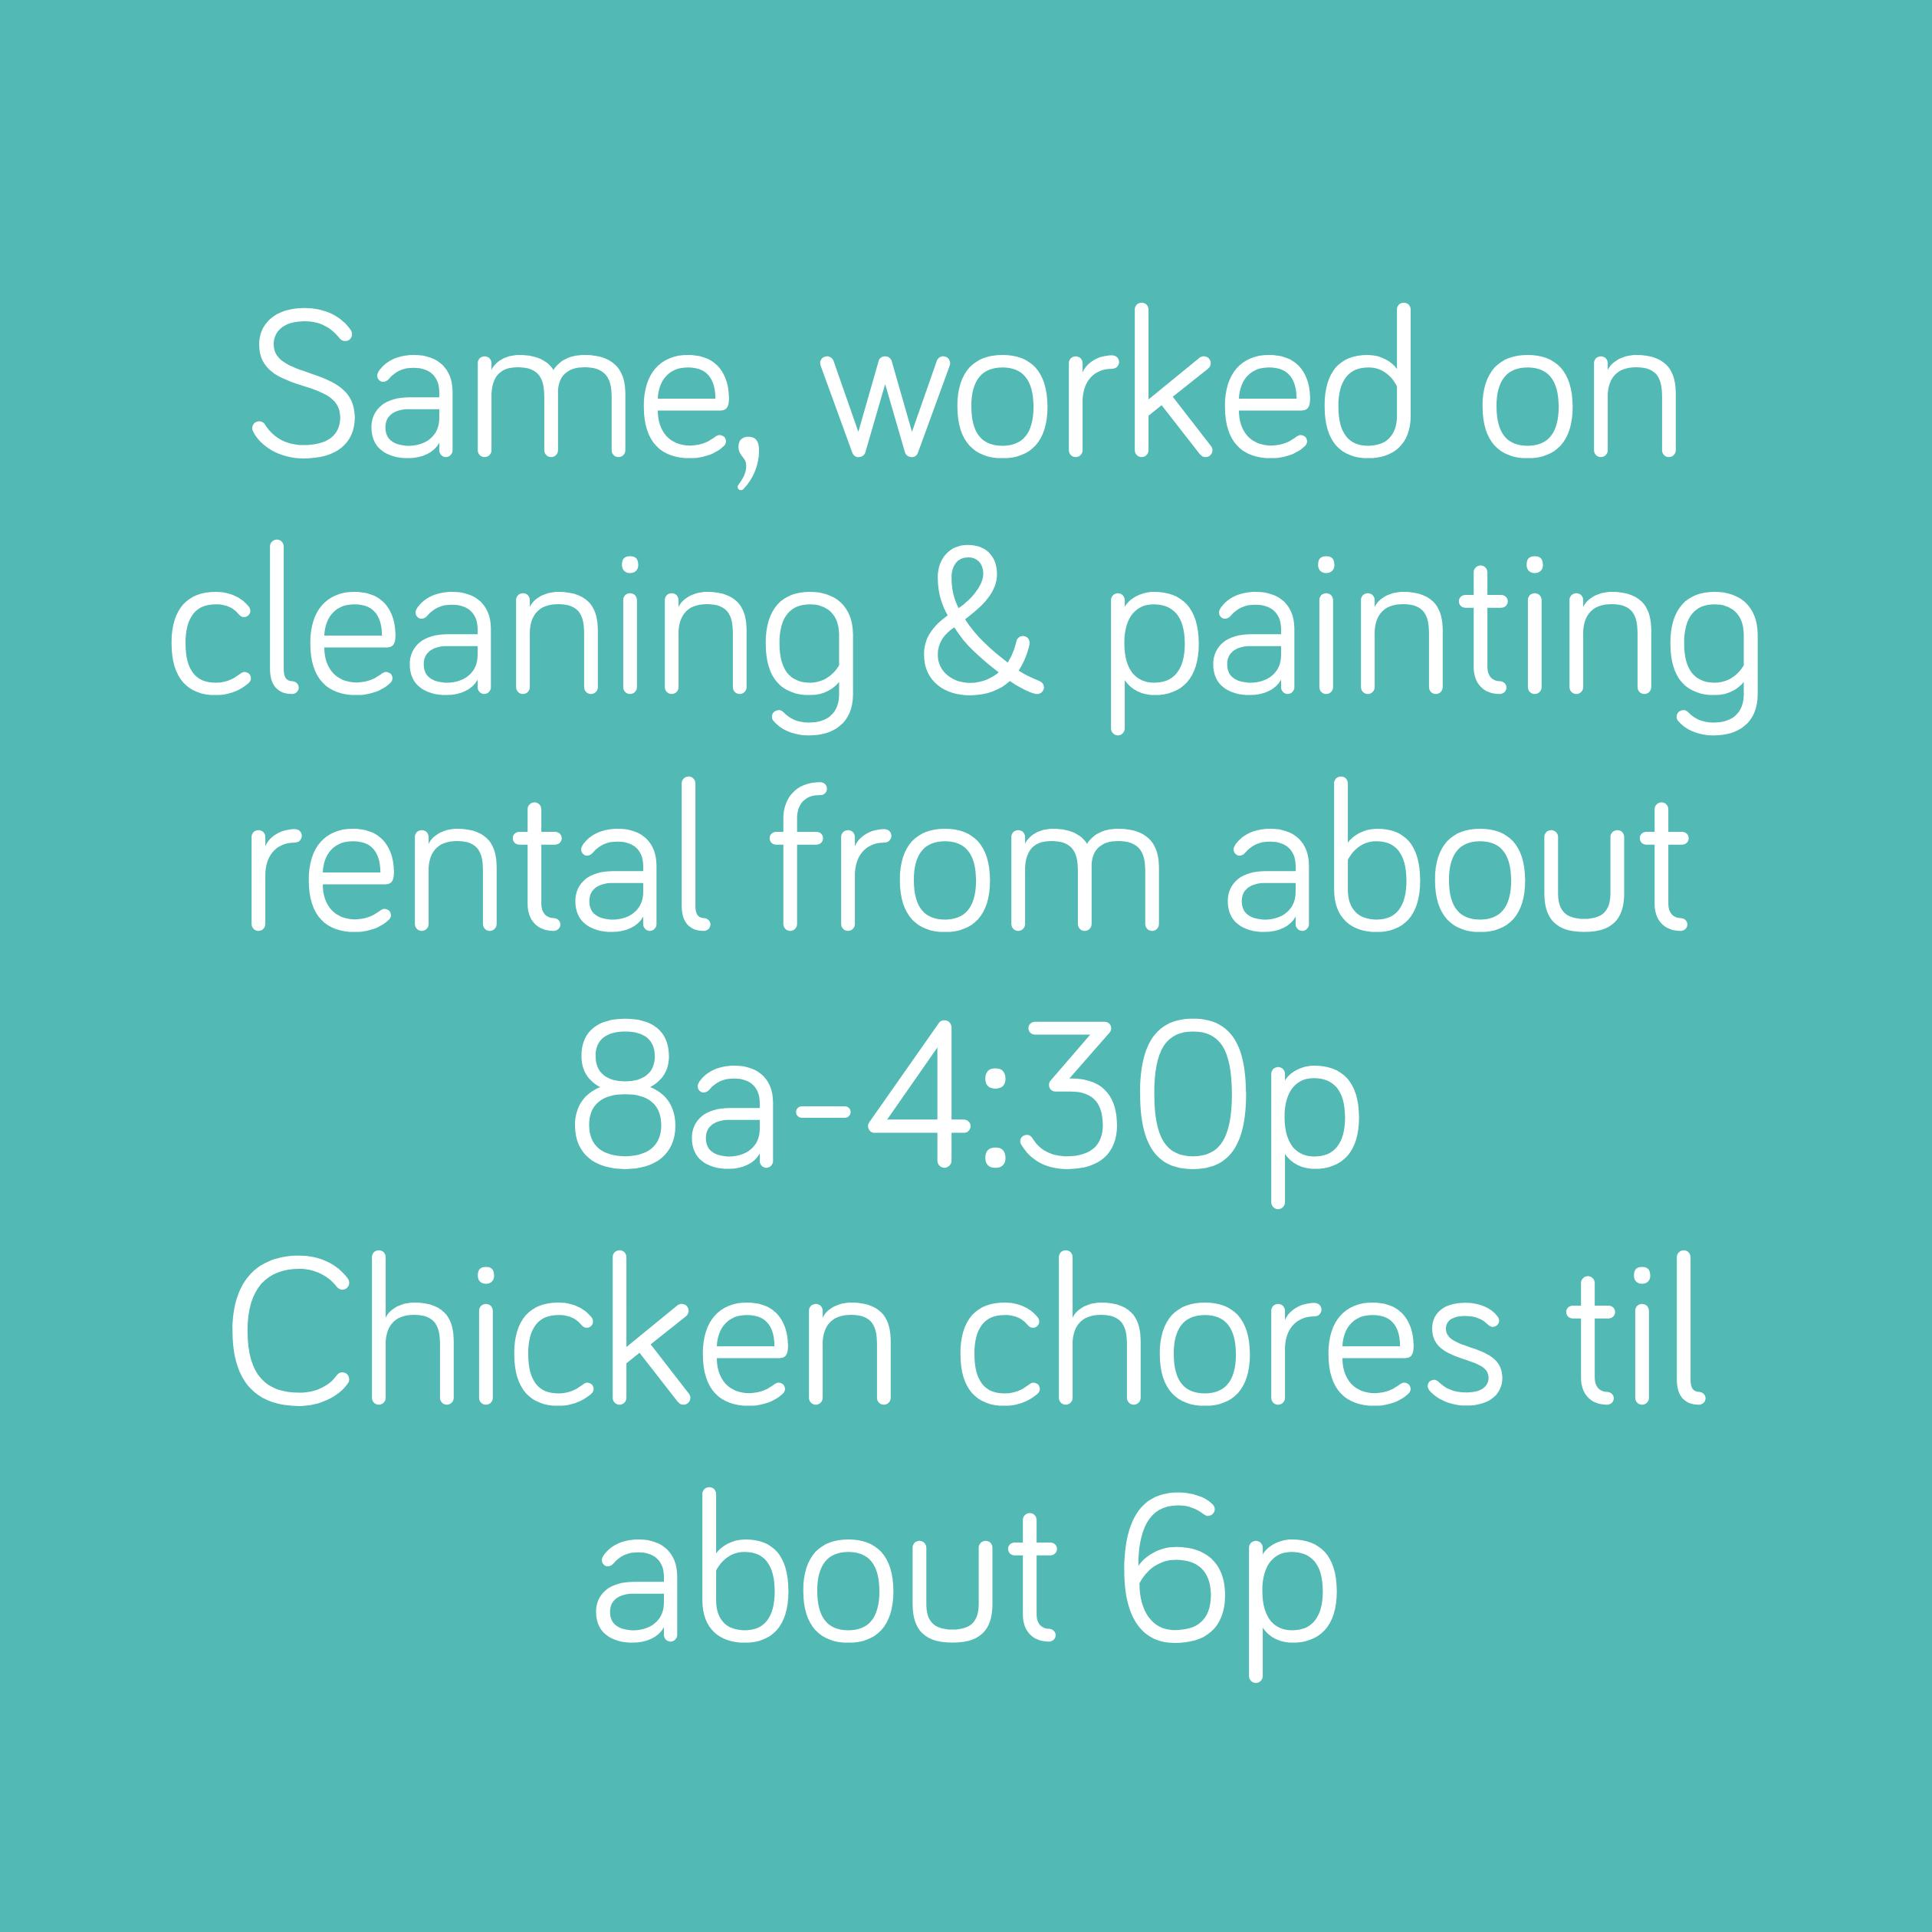 Same, worked on cleaning & painting rental from about 8a-4:30p Chicken chores til about 6p